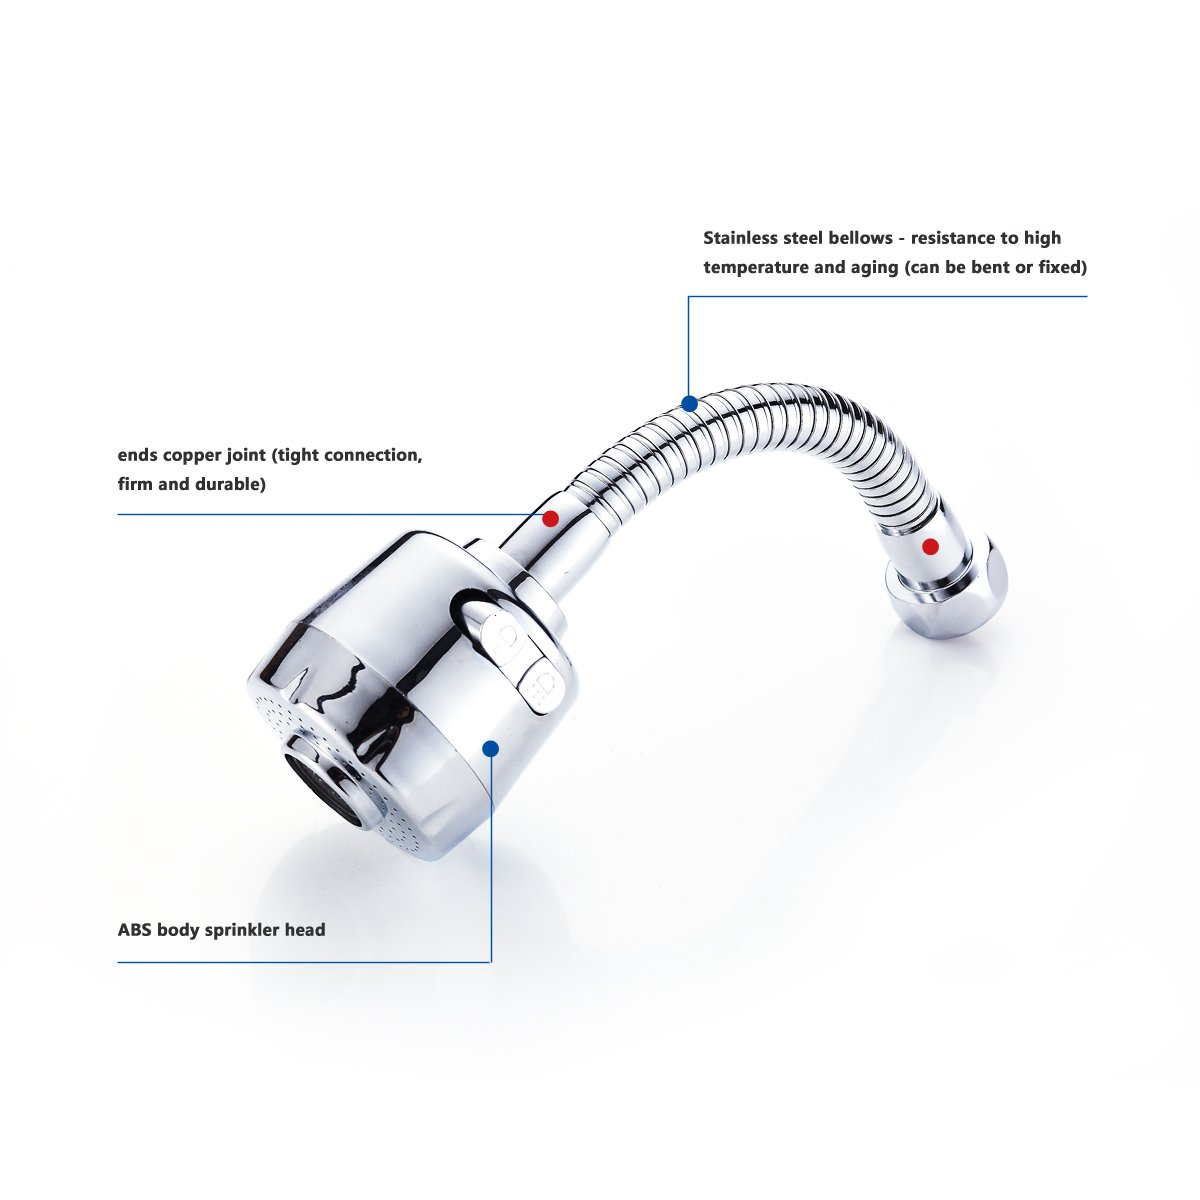 Kitchen Faucet Sprayer 360 Degrees Swivel, for Kitchen Sinks Sprayer Replacement Attachment, Laundry Sink Sprayer,Suitable for 22mm/24mm thread interface of circular faucet by DEWALTS (Image #5)